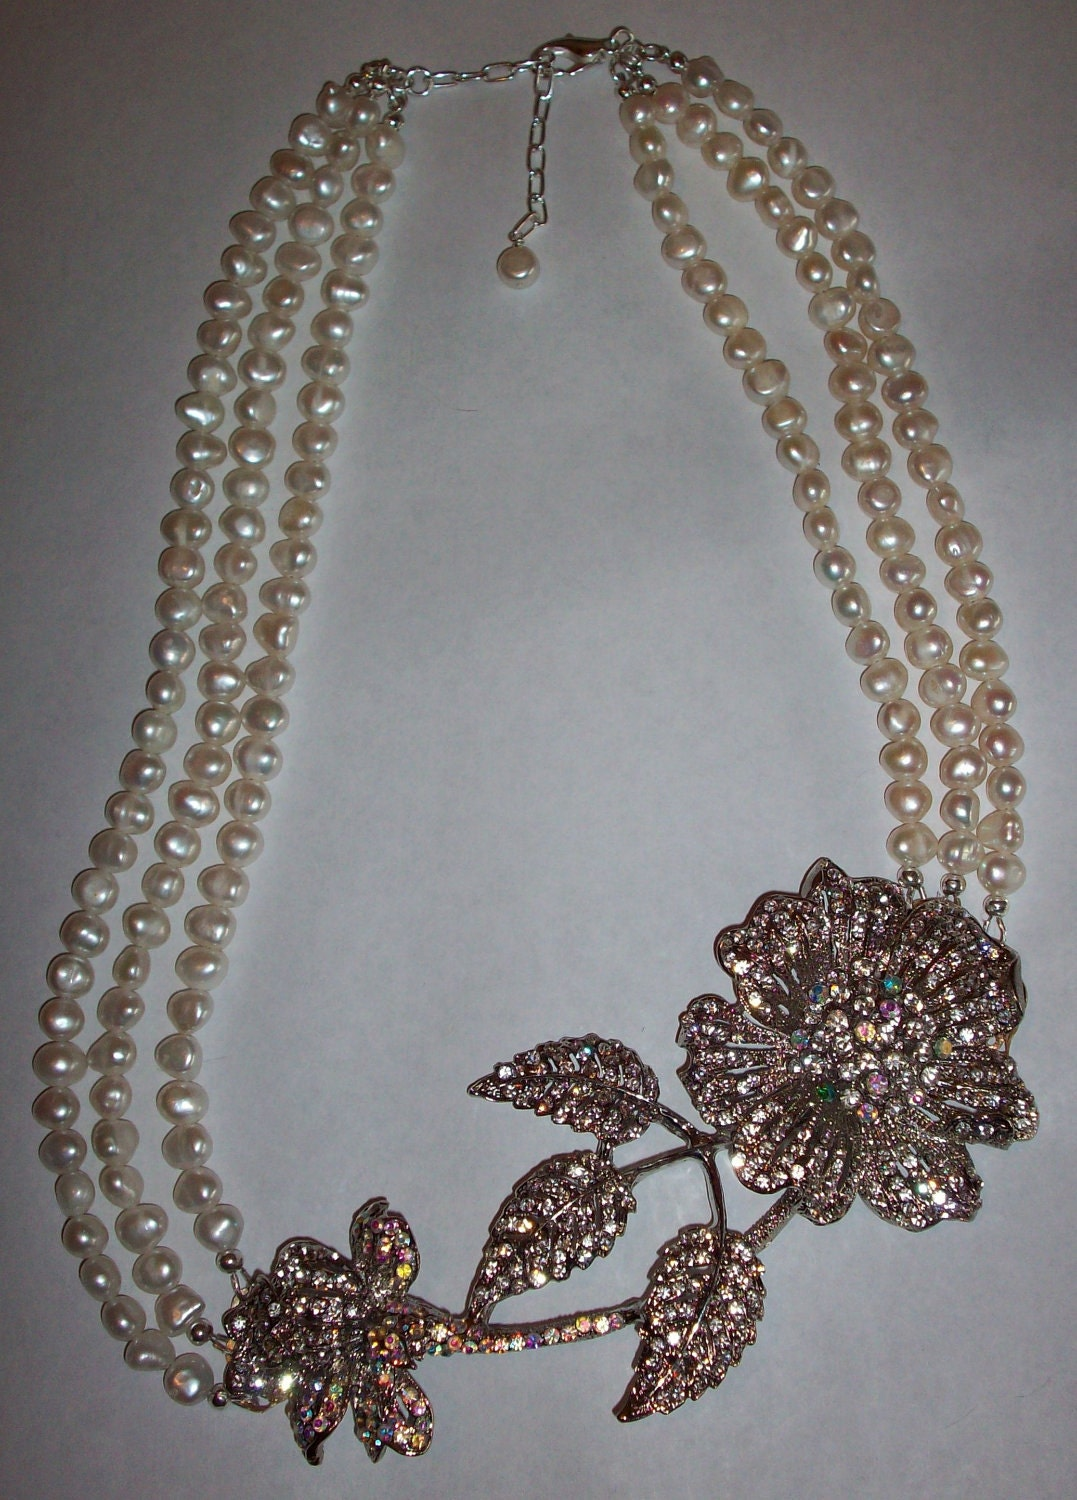 SALE 30% Off-Unique One of a Kind Huge Rhinestone Flower Freshwater Pearl Necklace Gifts under 100